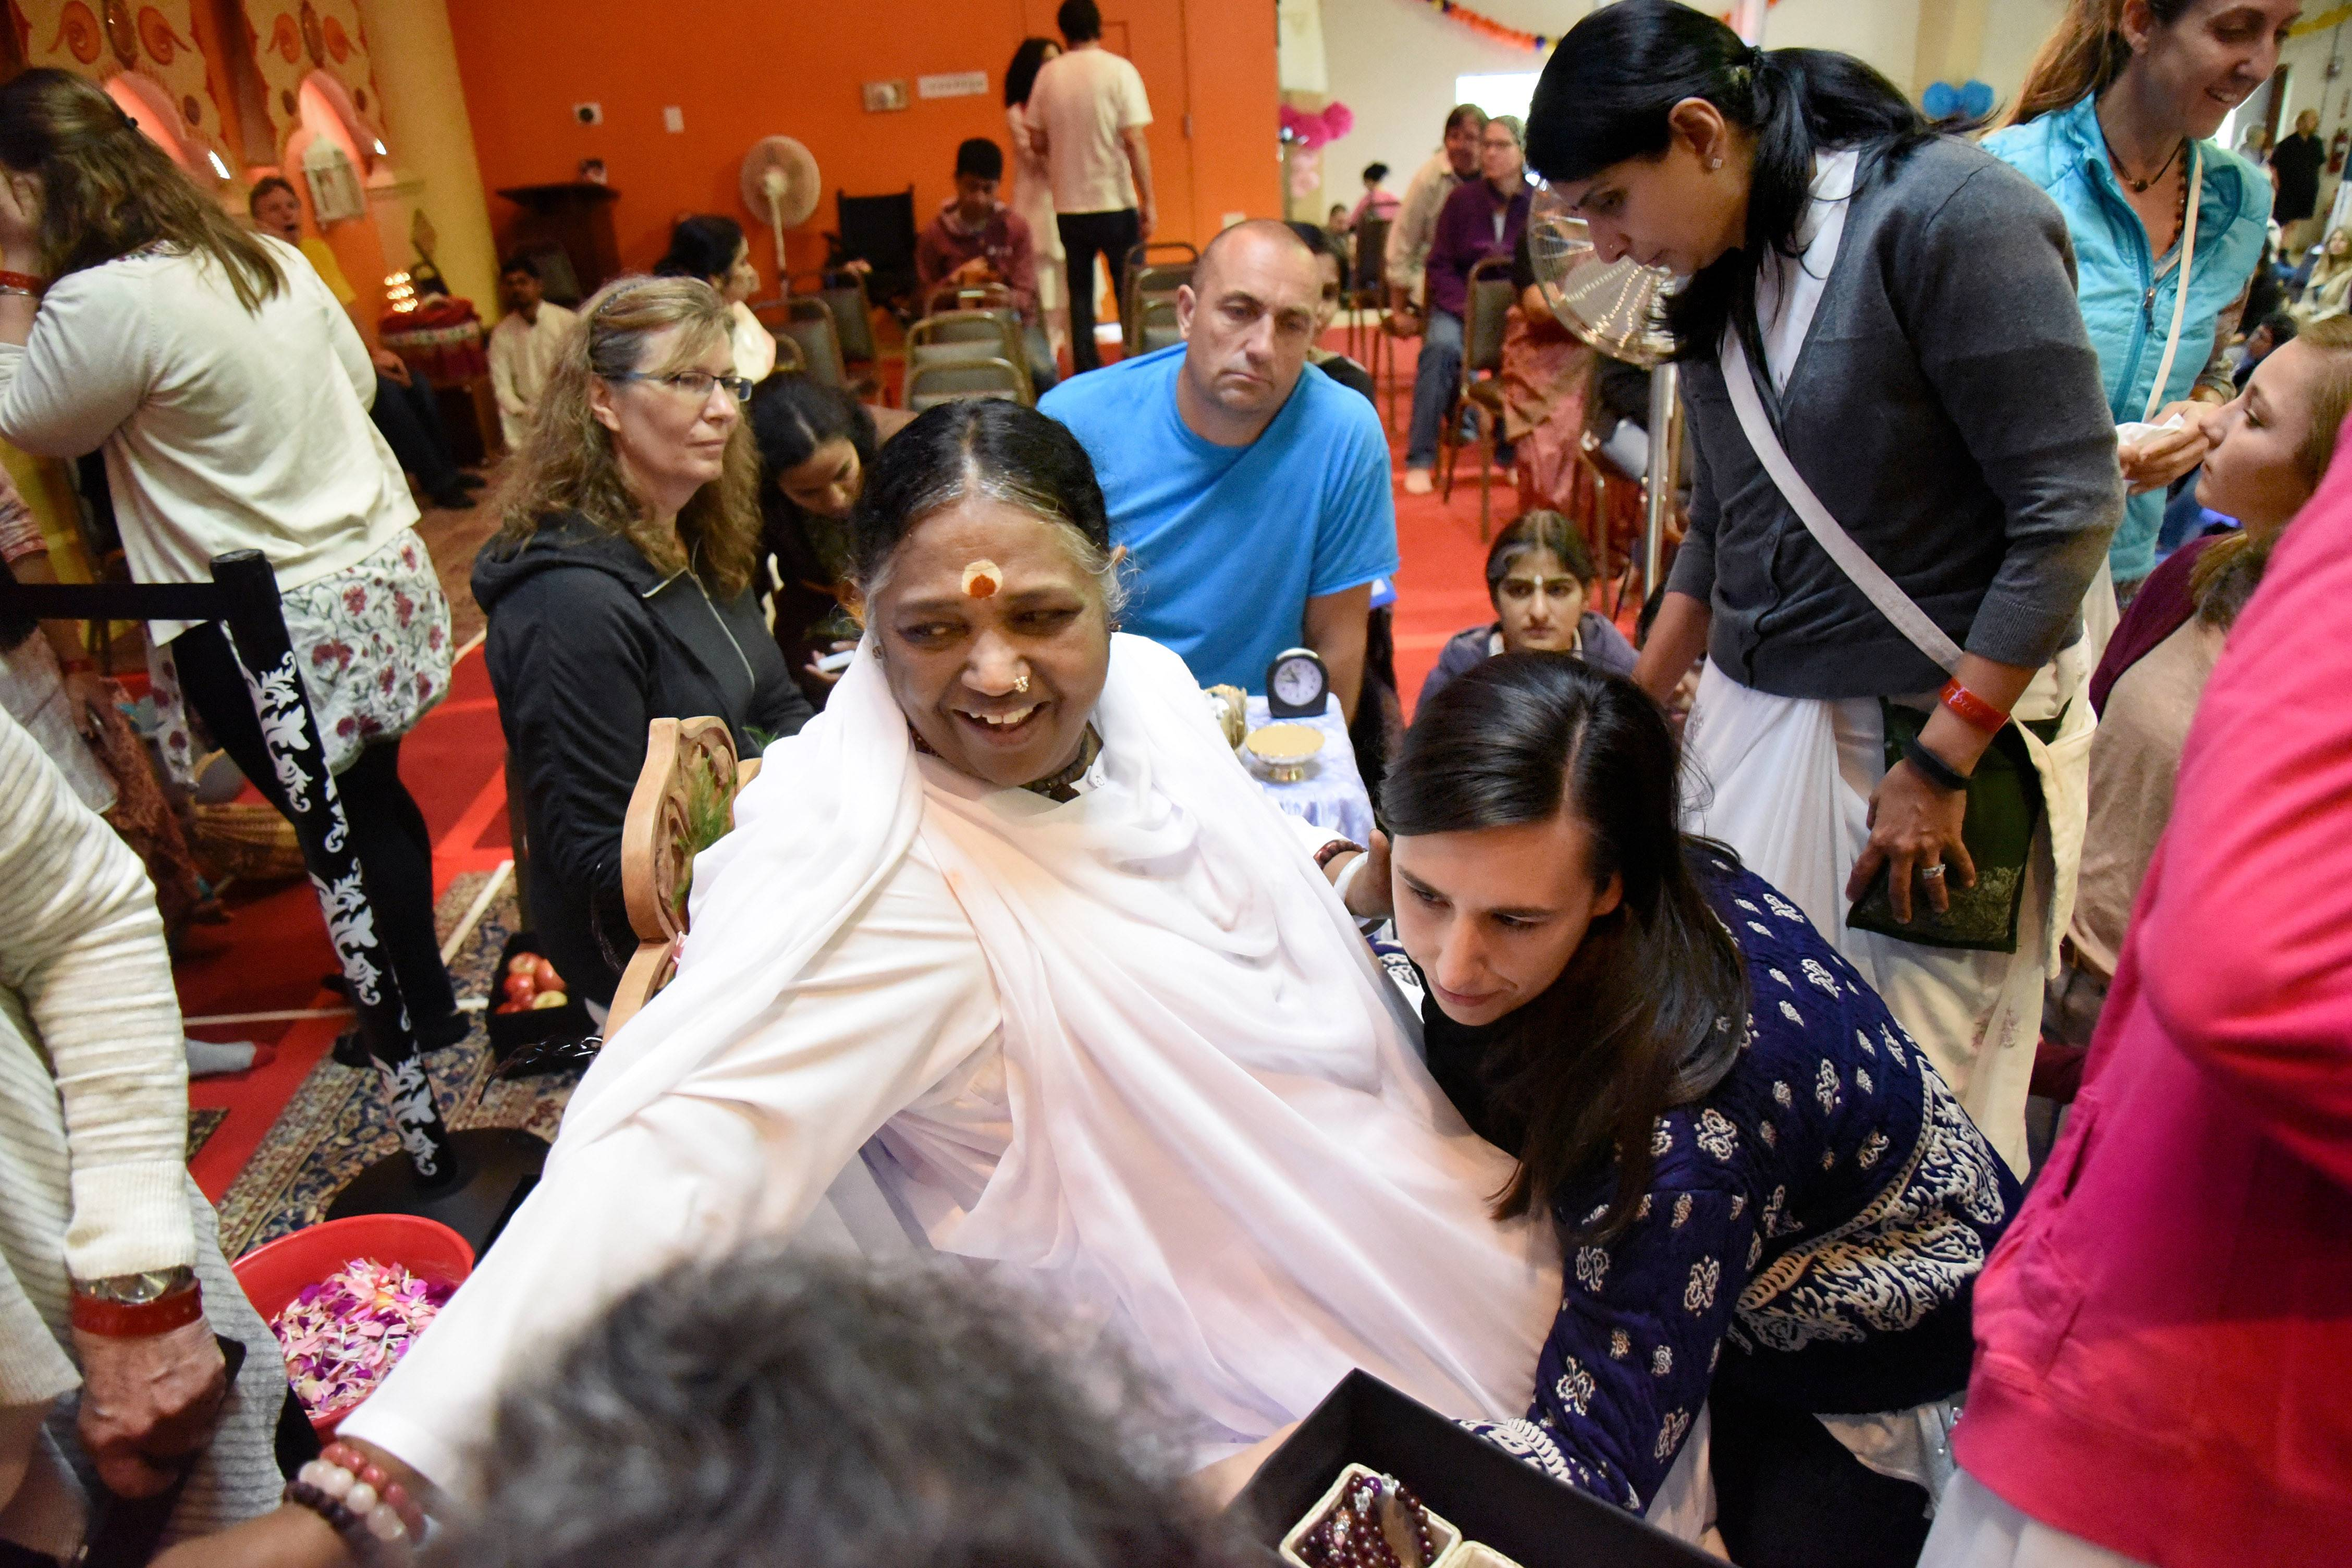 Sri Mata Amritanandamayi, a humanitarian and spiritual leader from India who blesses people with hugs, makes frequent appearances at the M.A. Center just outside of Elburn, including last year. The center has plans to enhance its 140-acre retreat with homes and apartments.